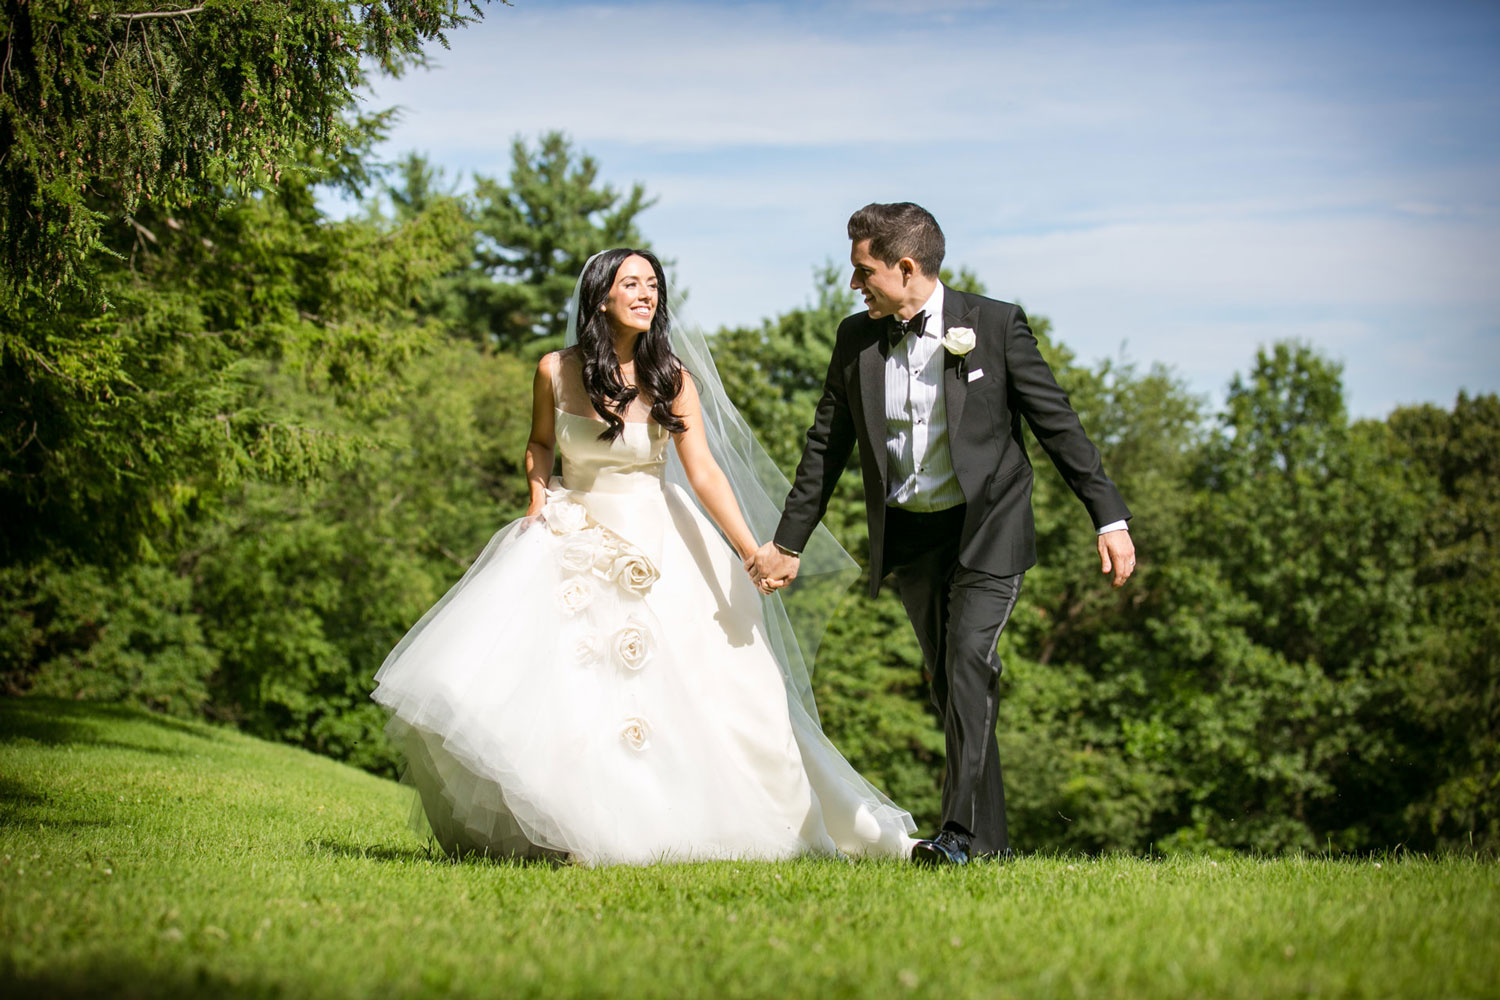 what you should do after the wedding, to-do list for newlyweds